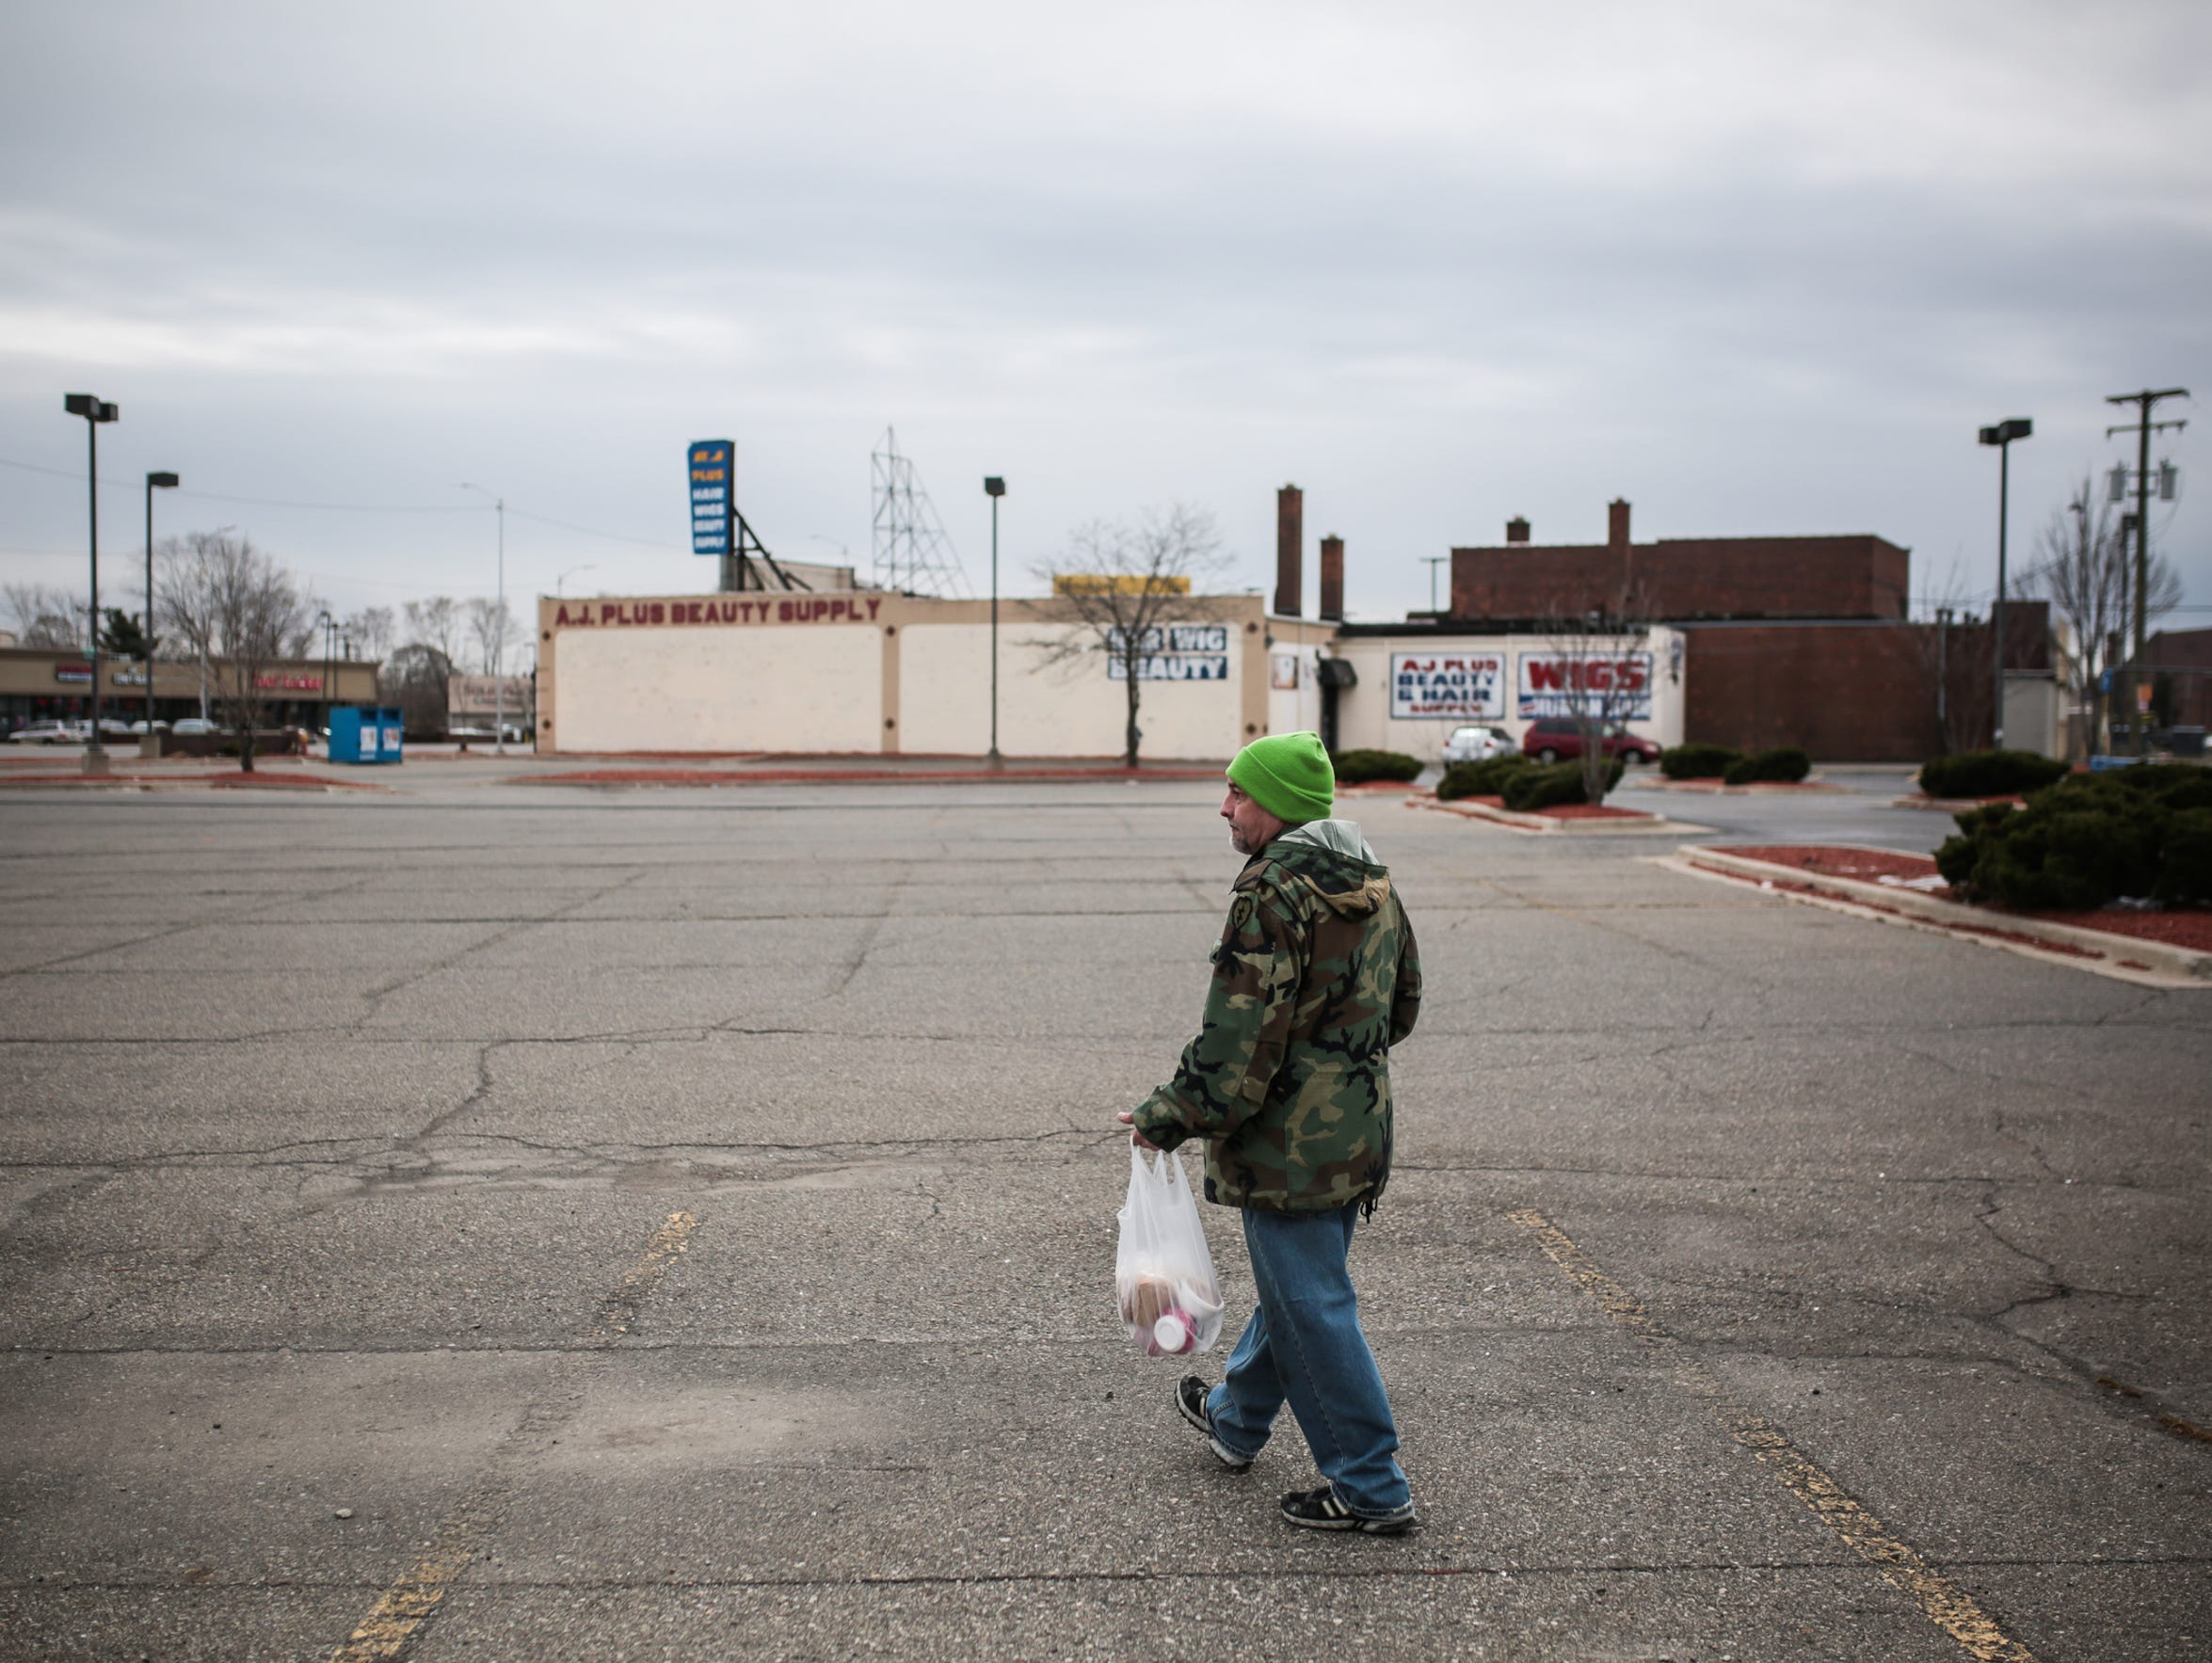 Michael Terrell, 58, of Detroit, walks home after getting